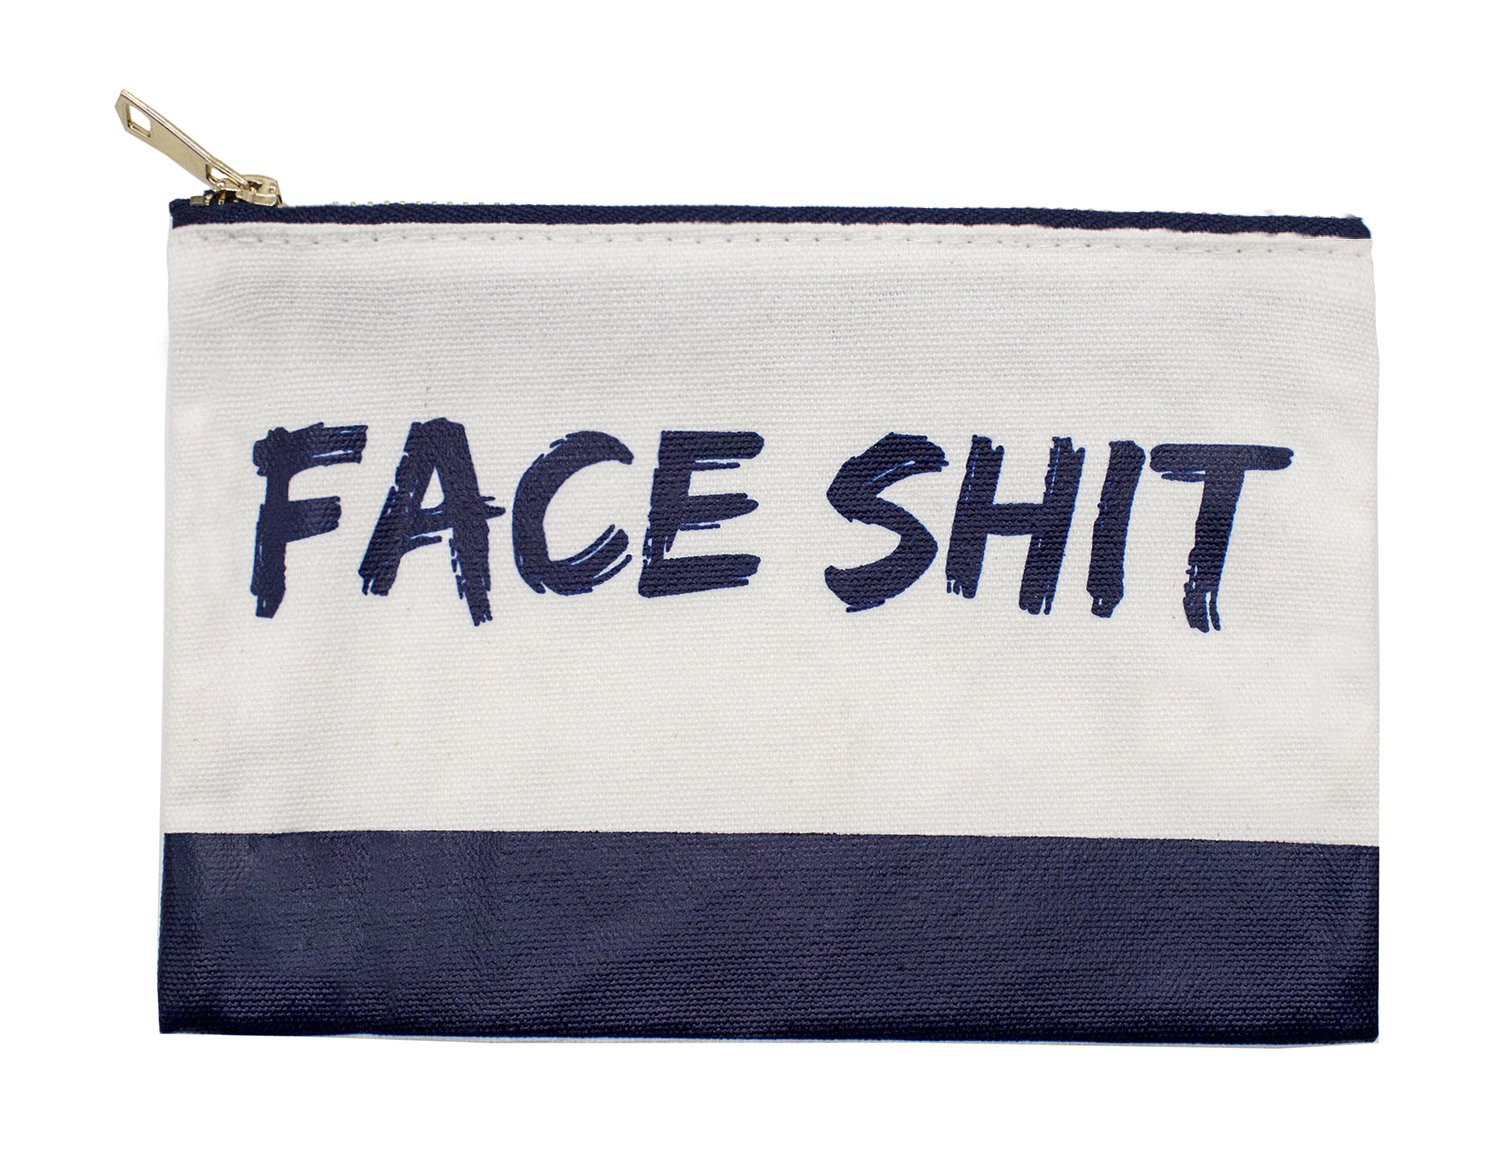 StylesILove Womens Girls 100% Cotton Canvas Stylish Print Travel Cosmetic Case Makeup Bag Black Multi-use Pouch with Bold Gold Zipper (Face Navy)